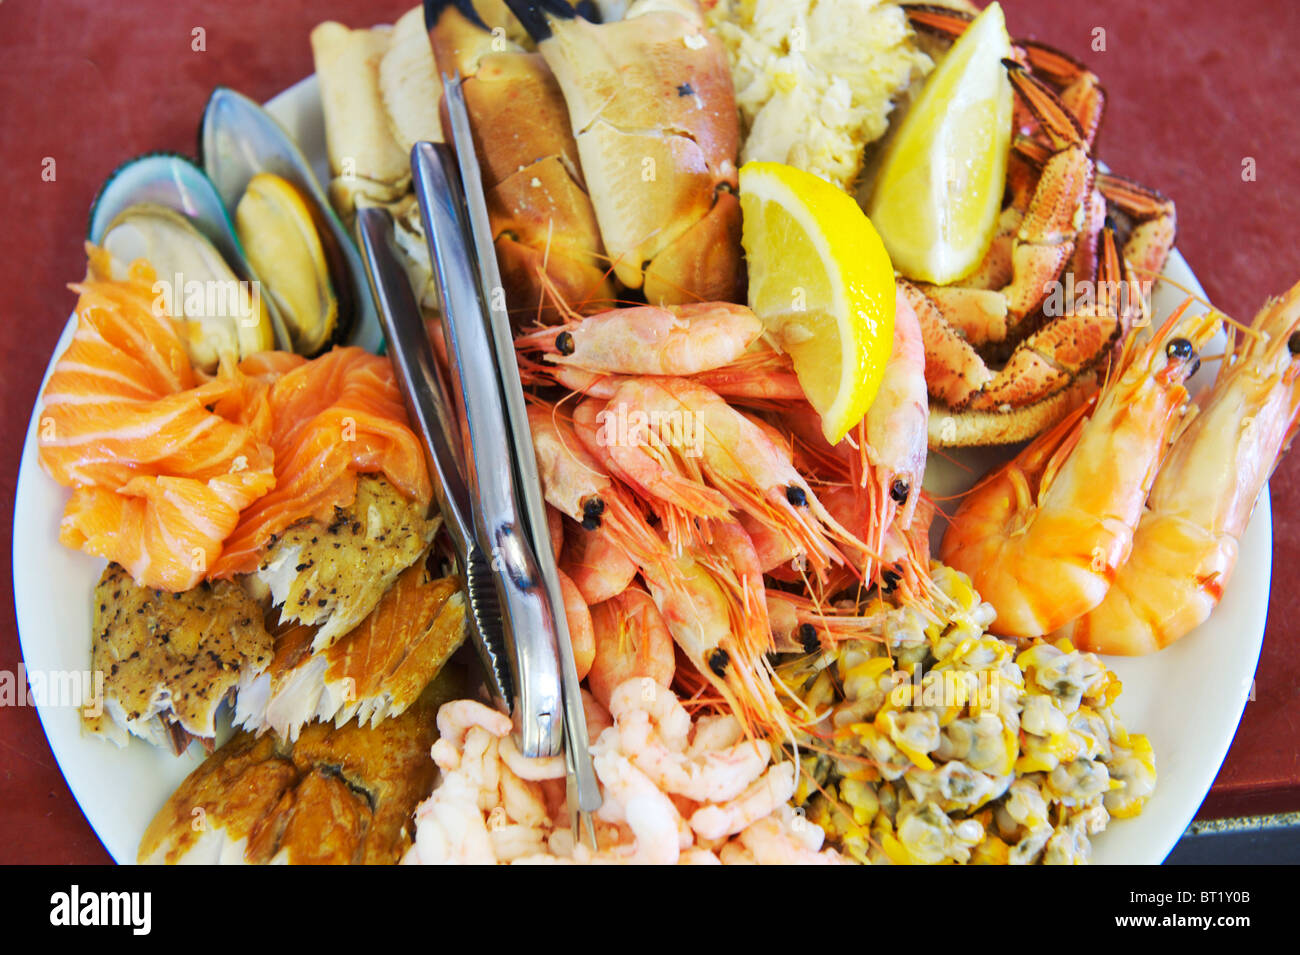 Fresh seafood platter ready to be served - Stock Image